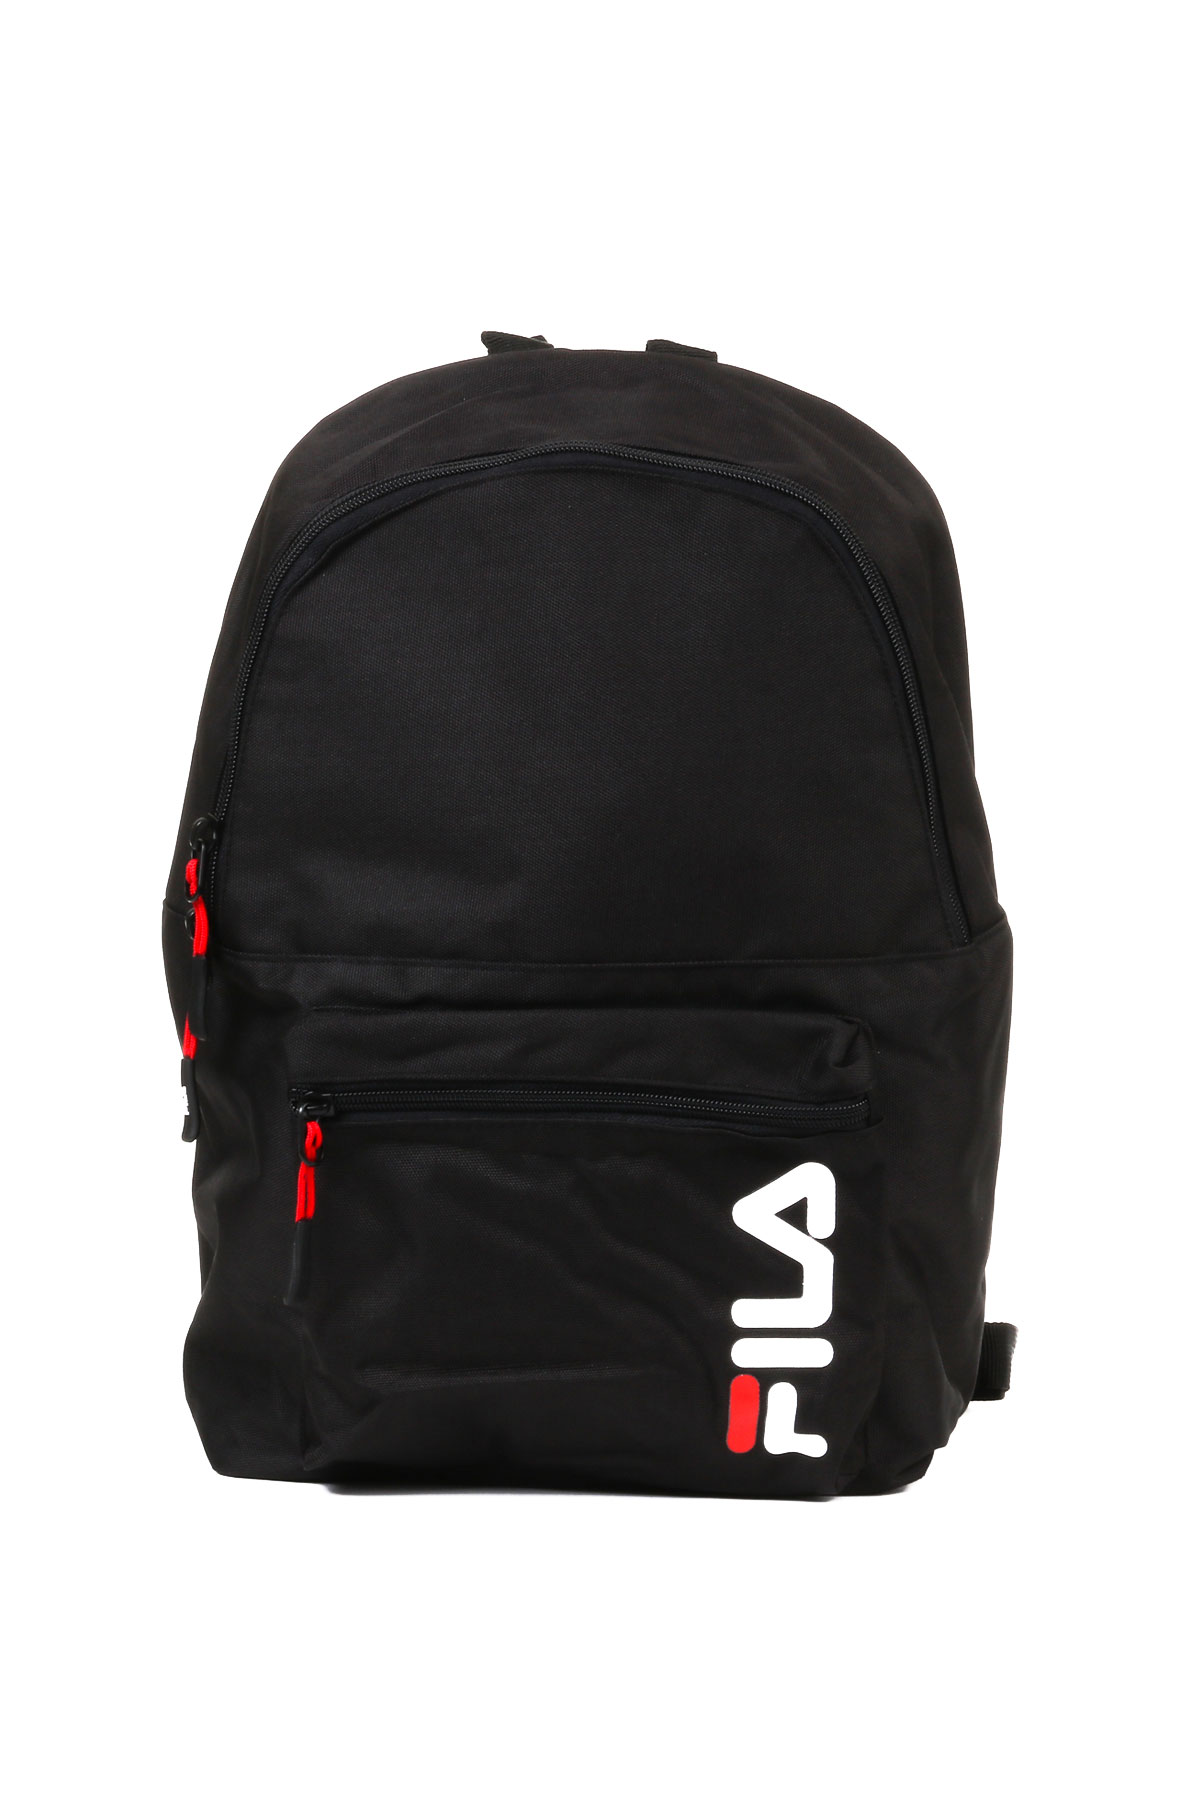 BLACK BACKPACK S COOL - FILA - Carbone Boutique